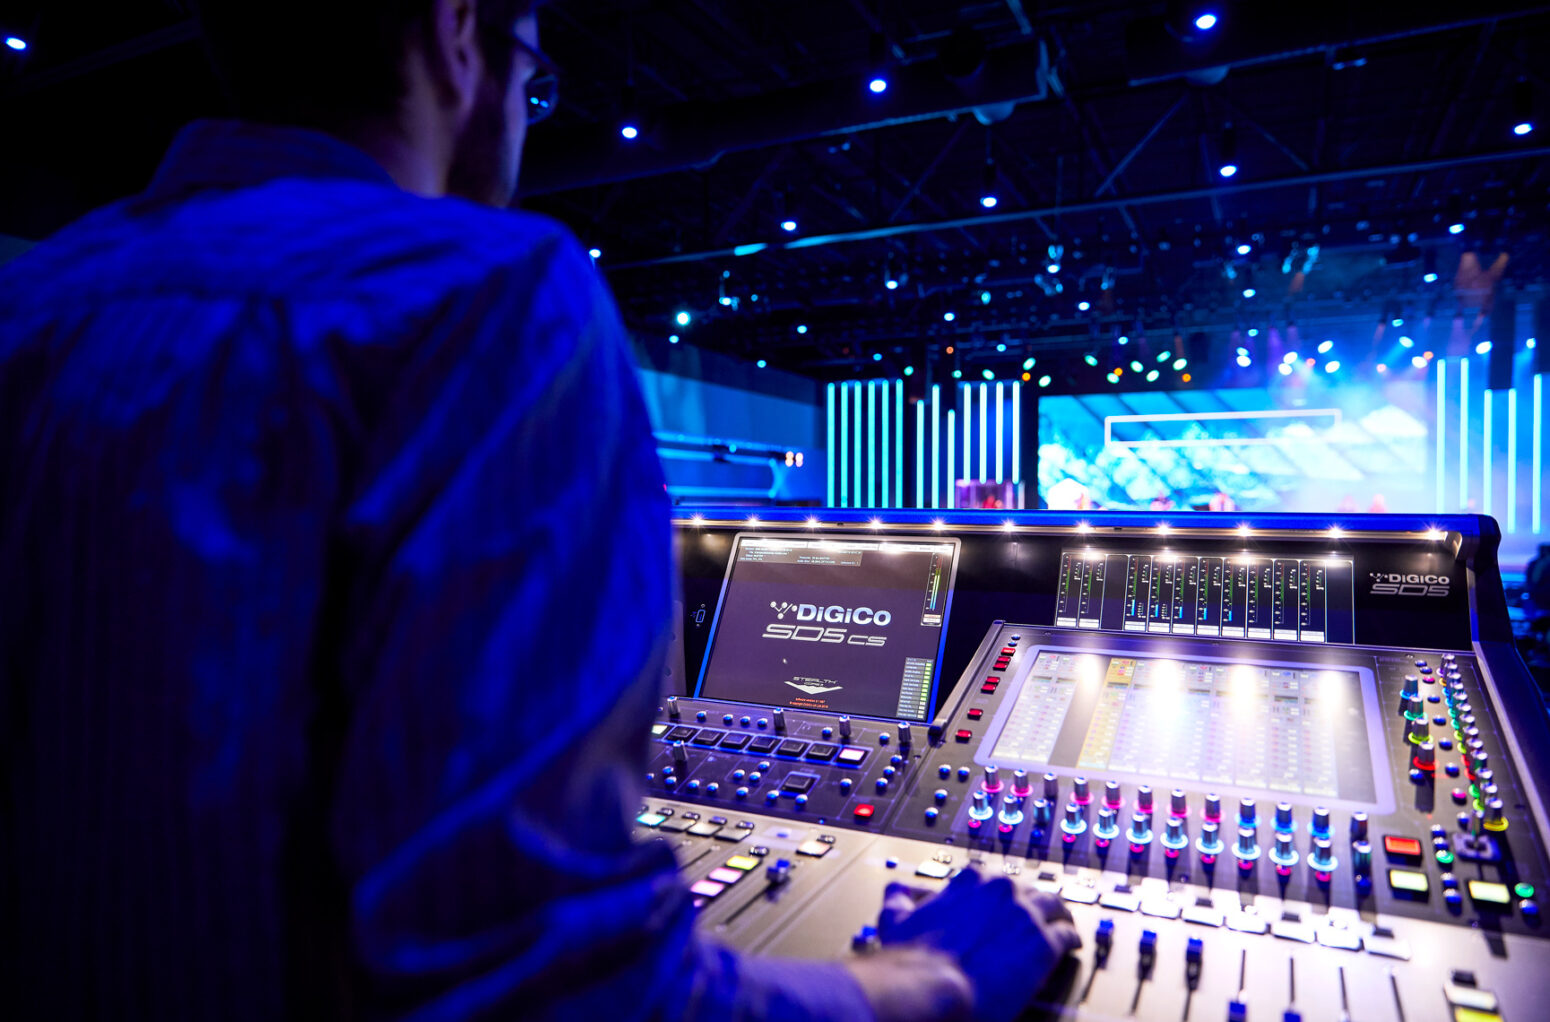 The church stage lighting controls seen here were a major improvement for Prestonwood Baptist.